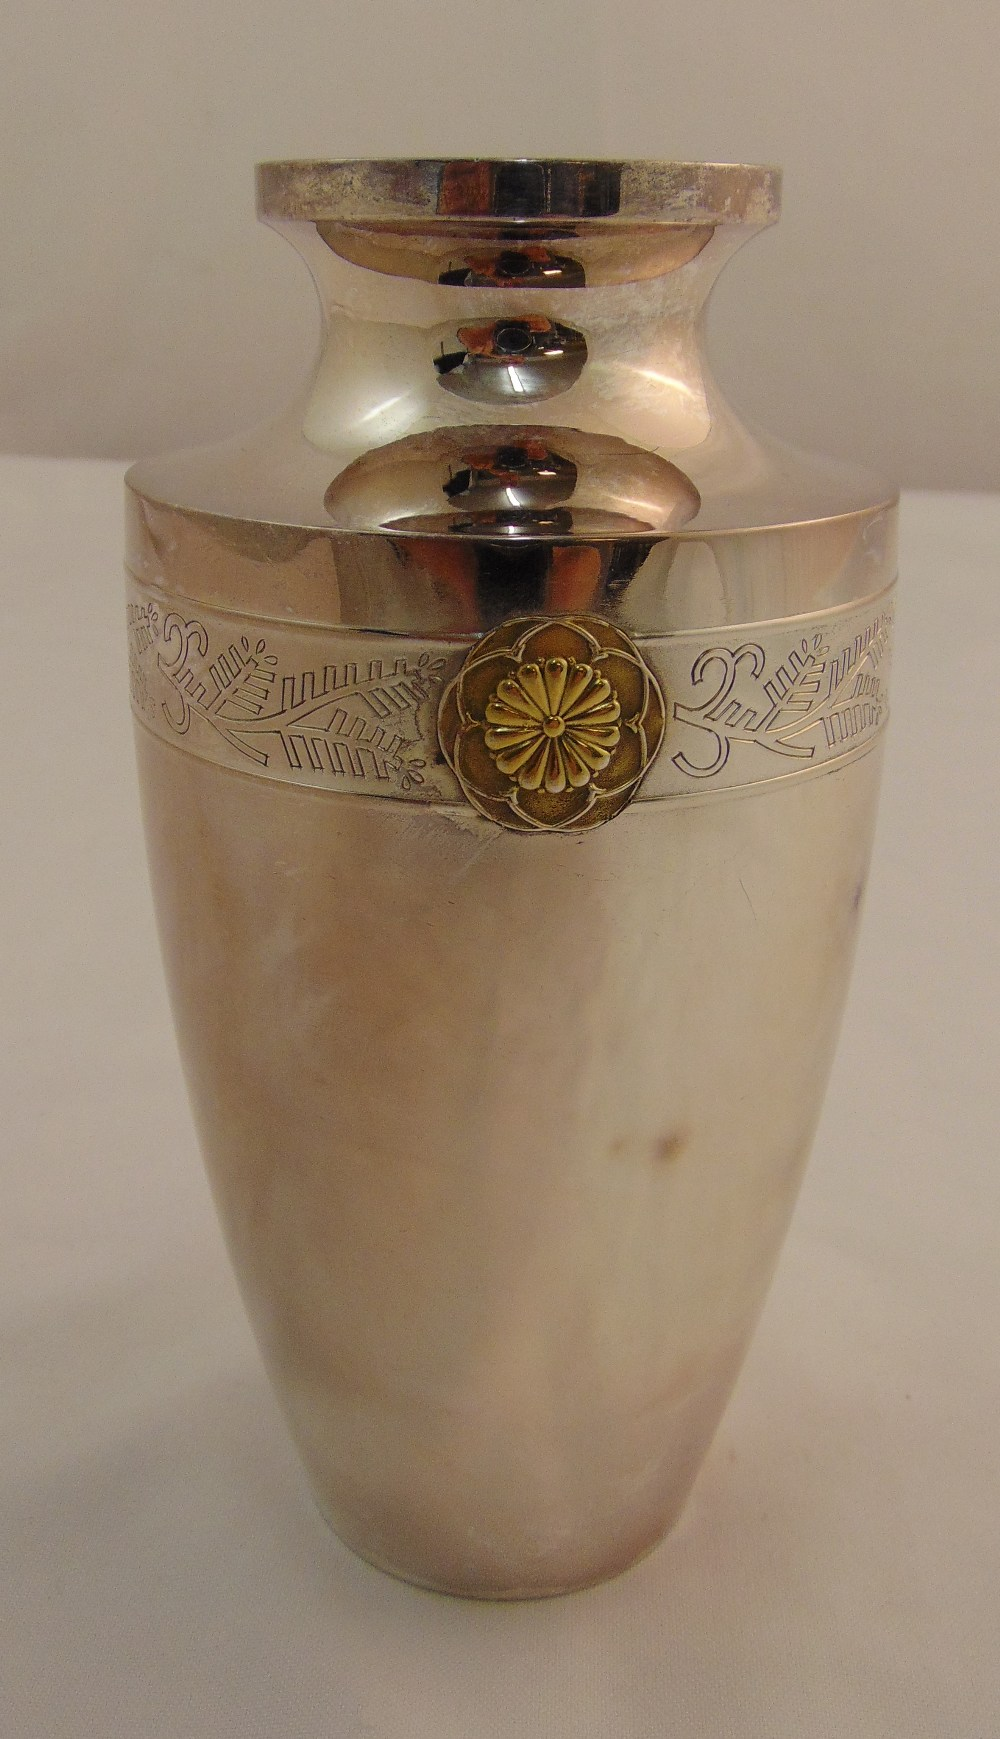 A Chinese white metal vase, approx total weight 565g